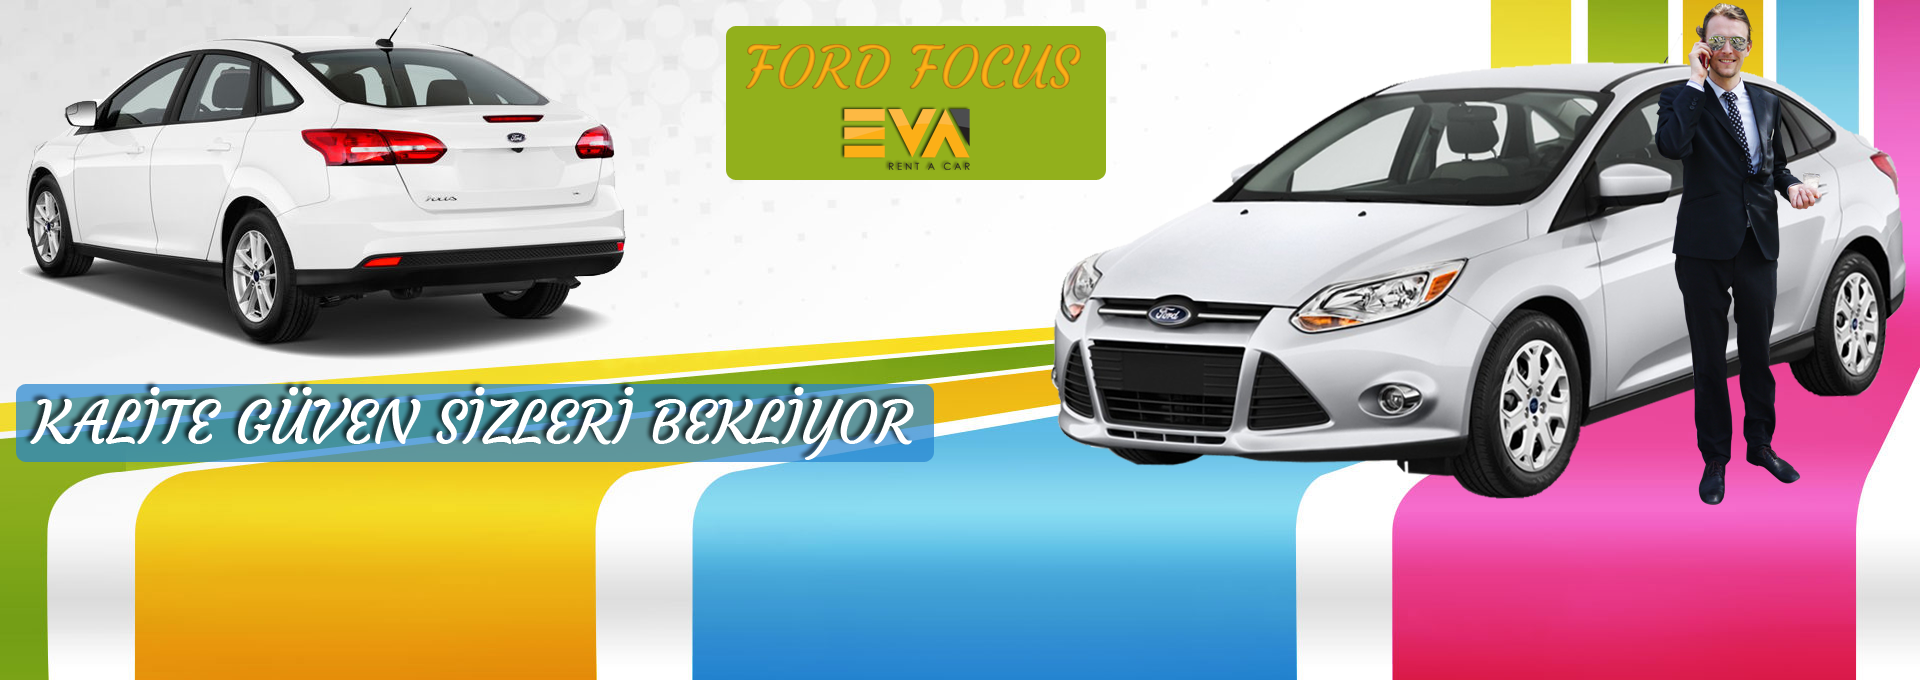 Eva Rent A Car Ford Focus